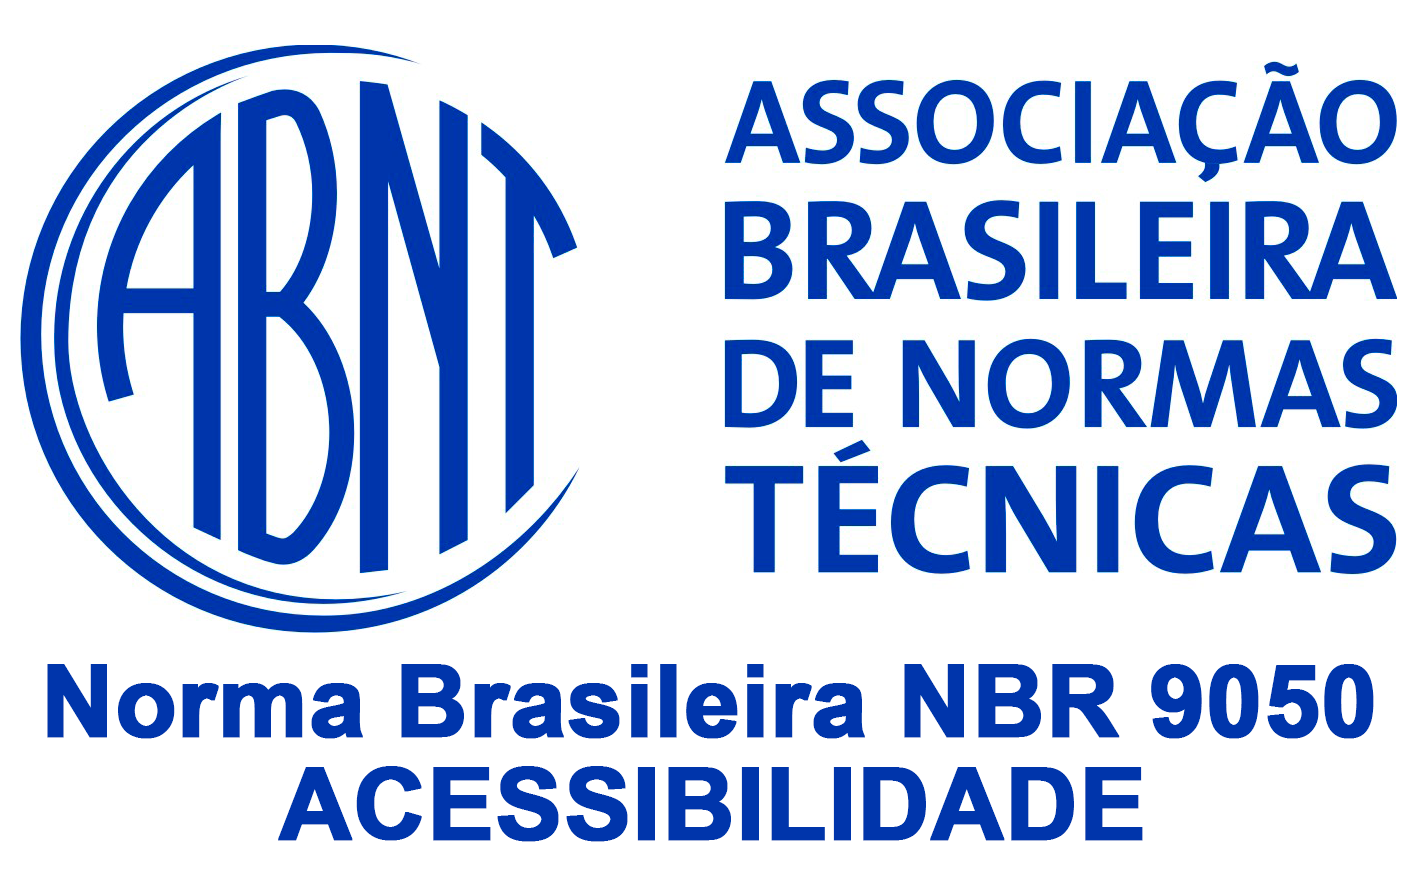 ABNT Acessibilidade